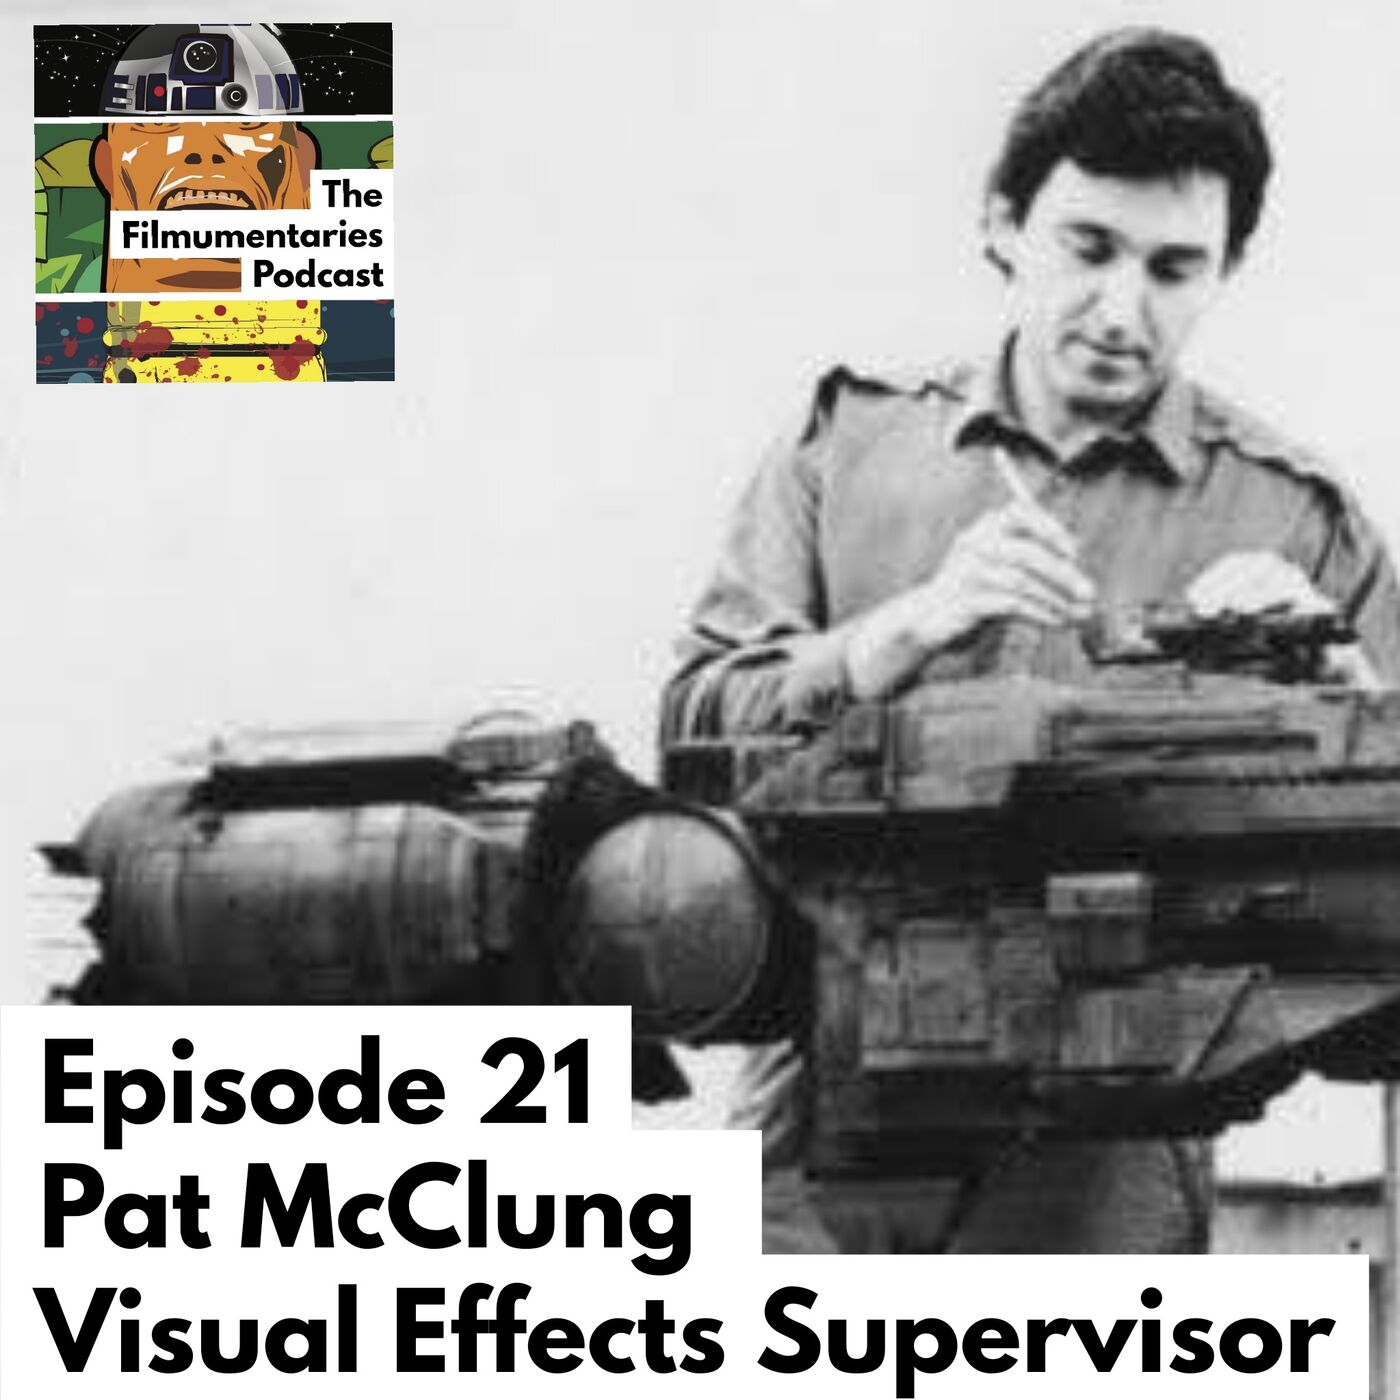 Pat McClung - Visual Effects Supervisor